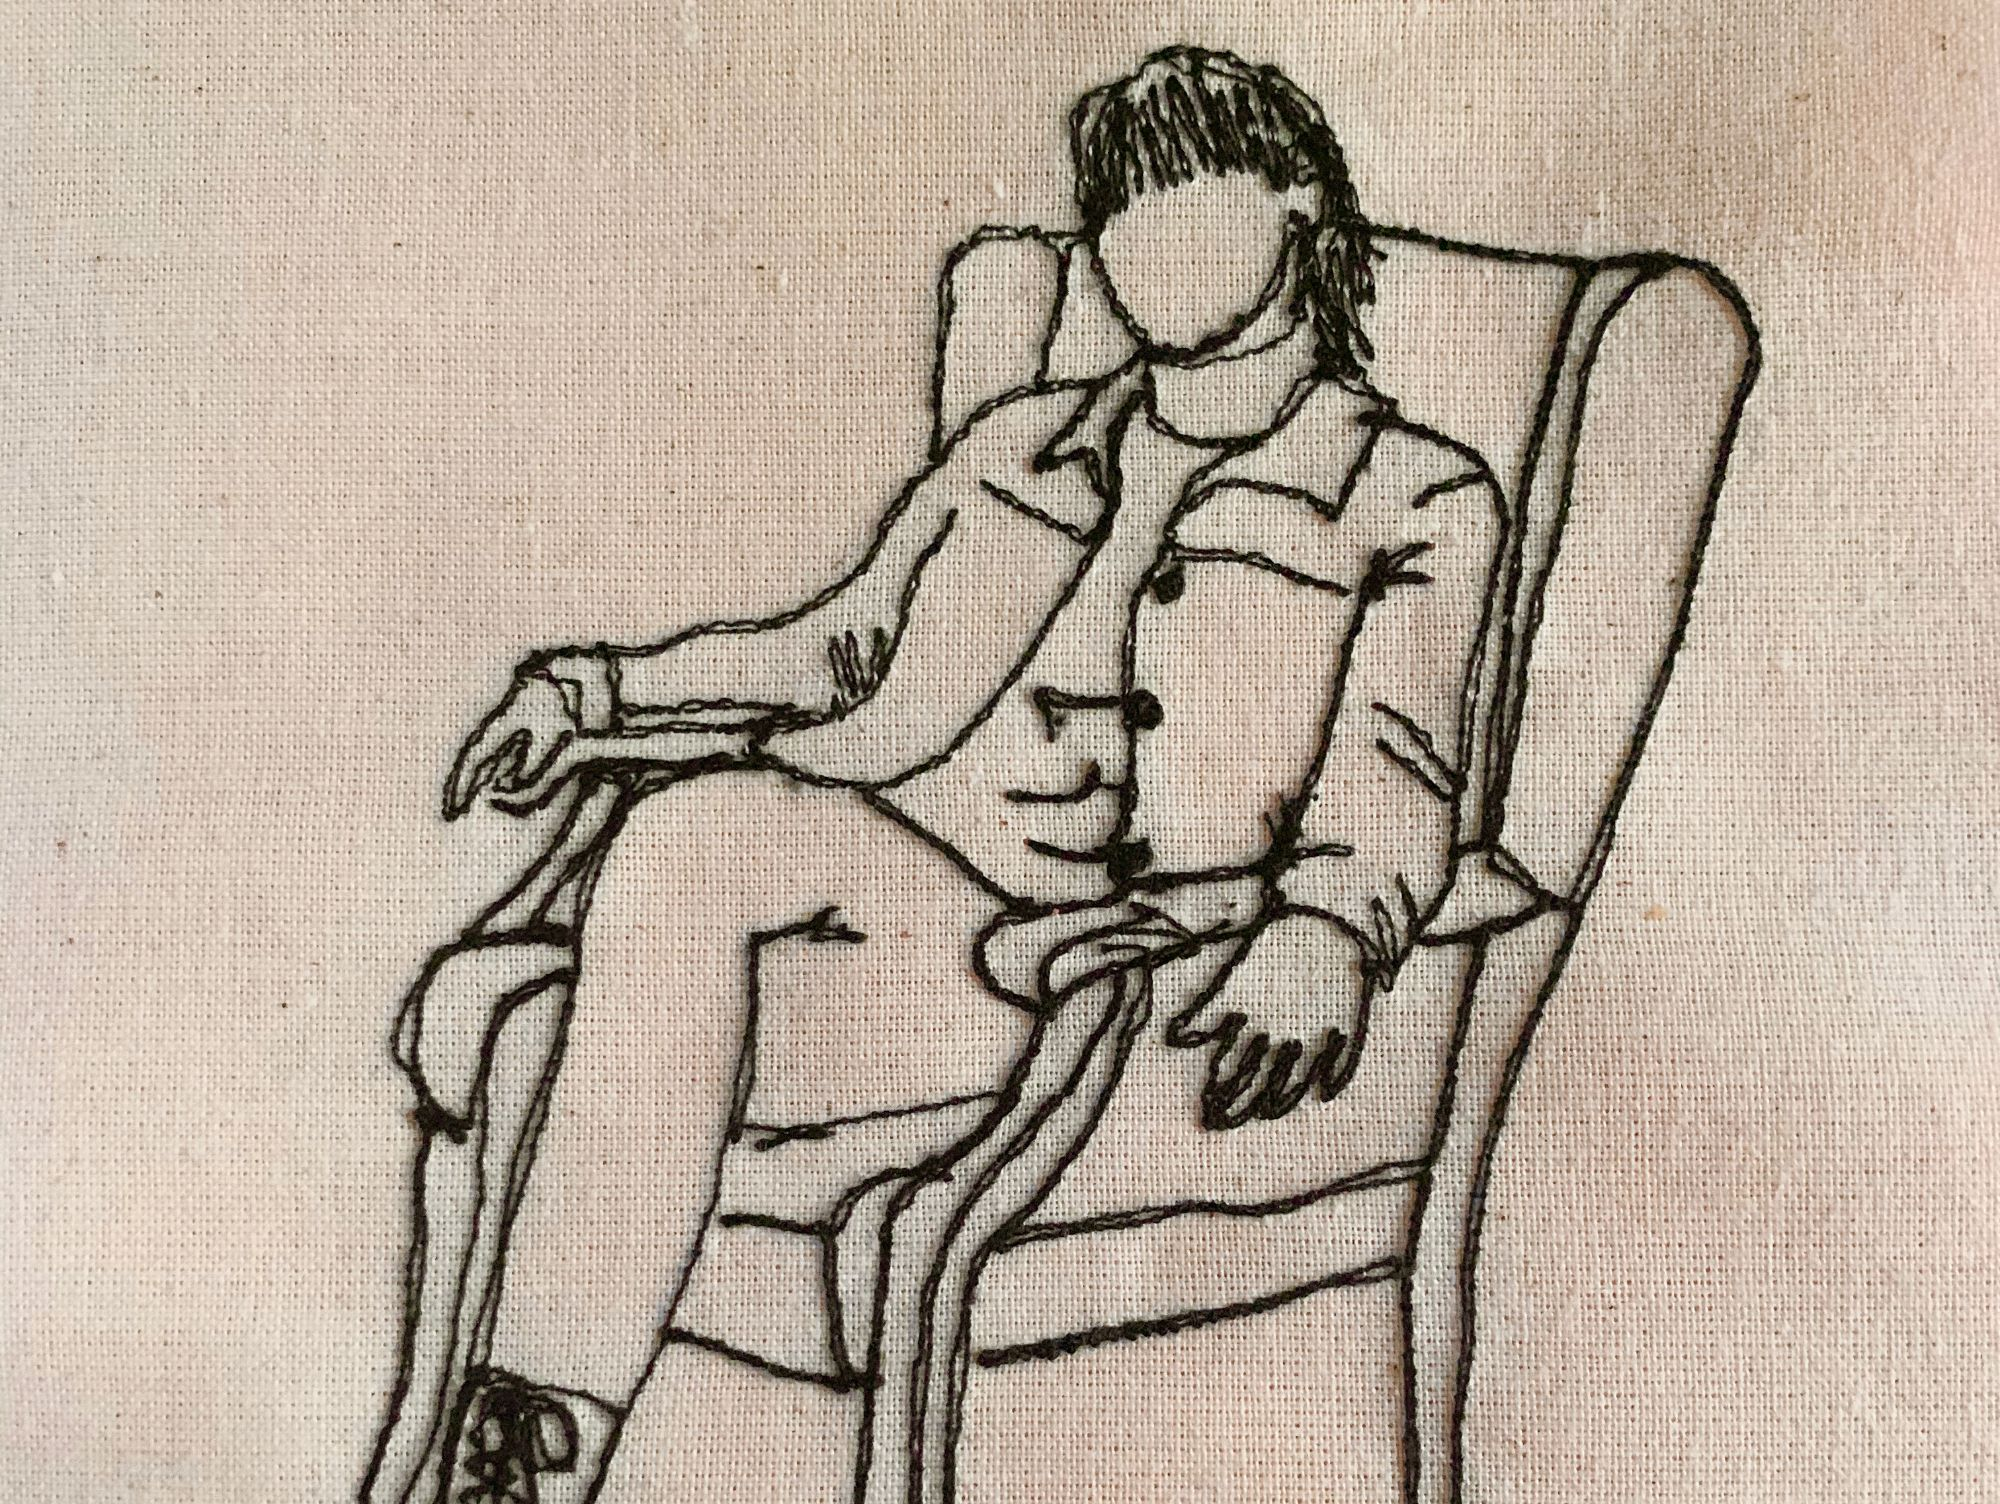 stitched image of a woman sitting on a chair